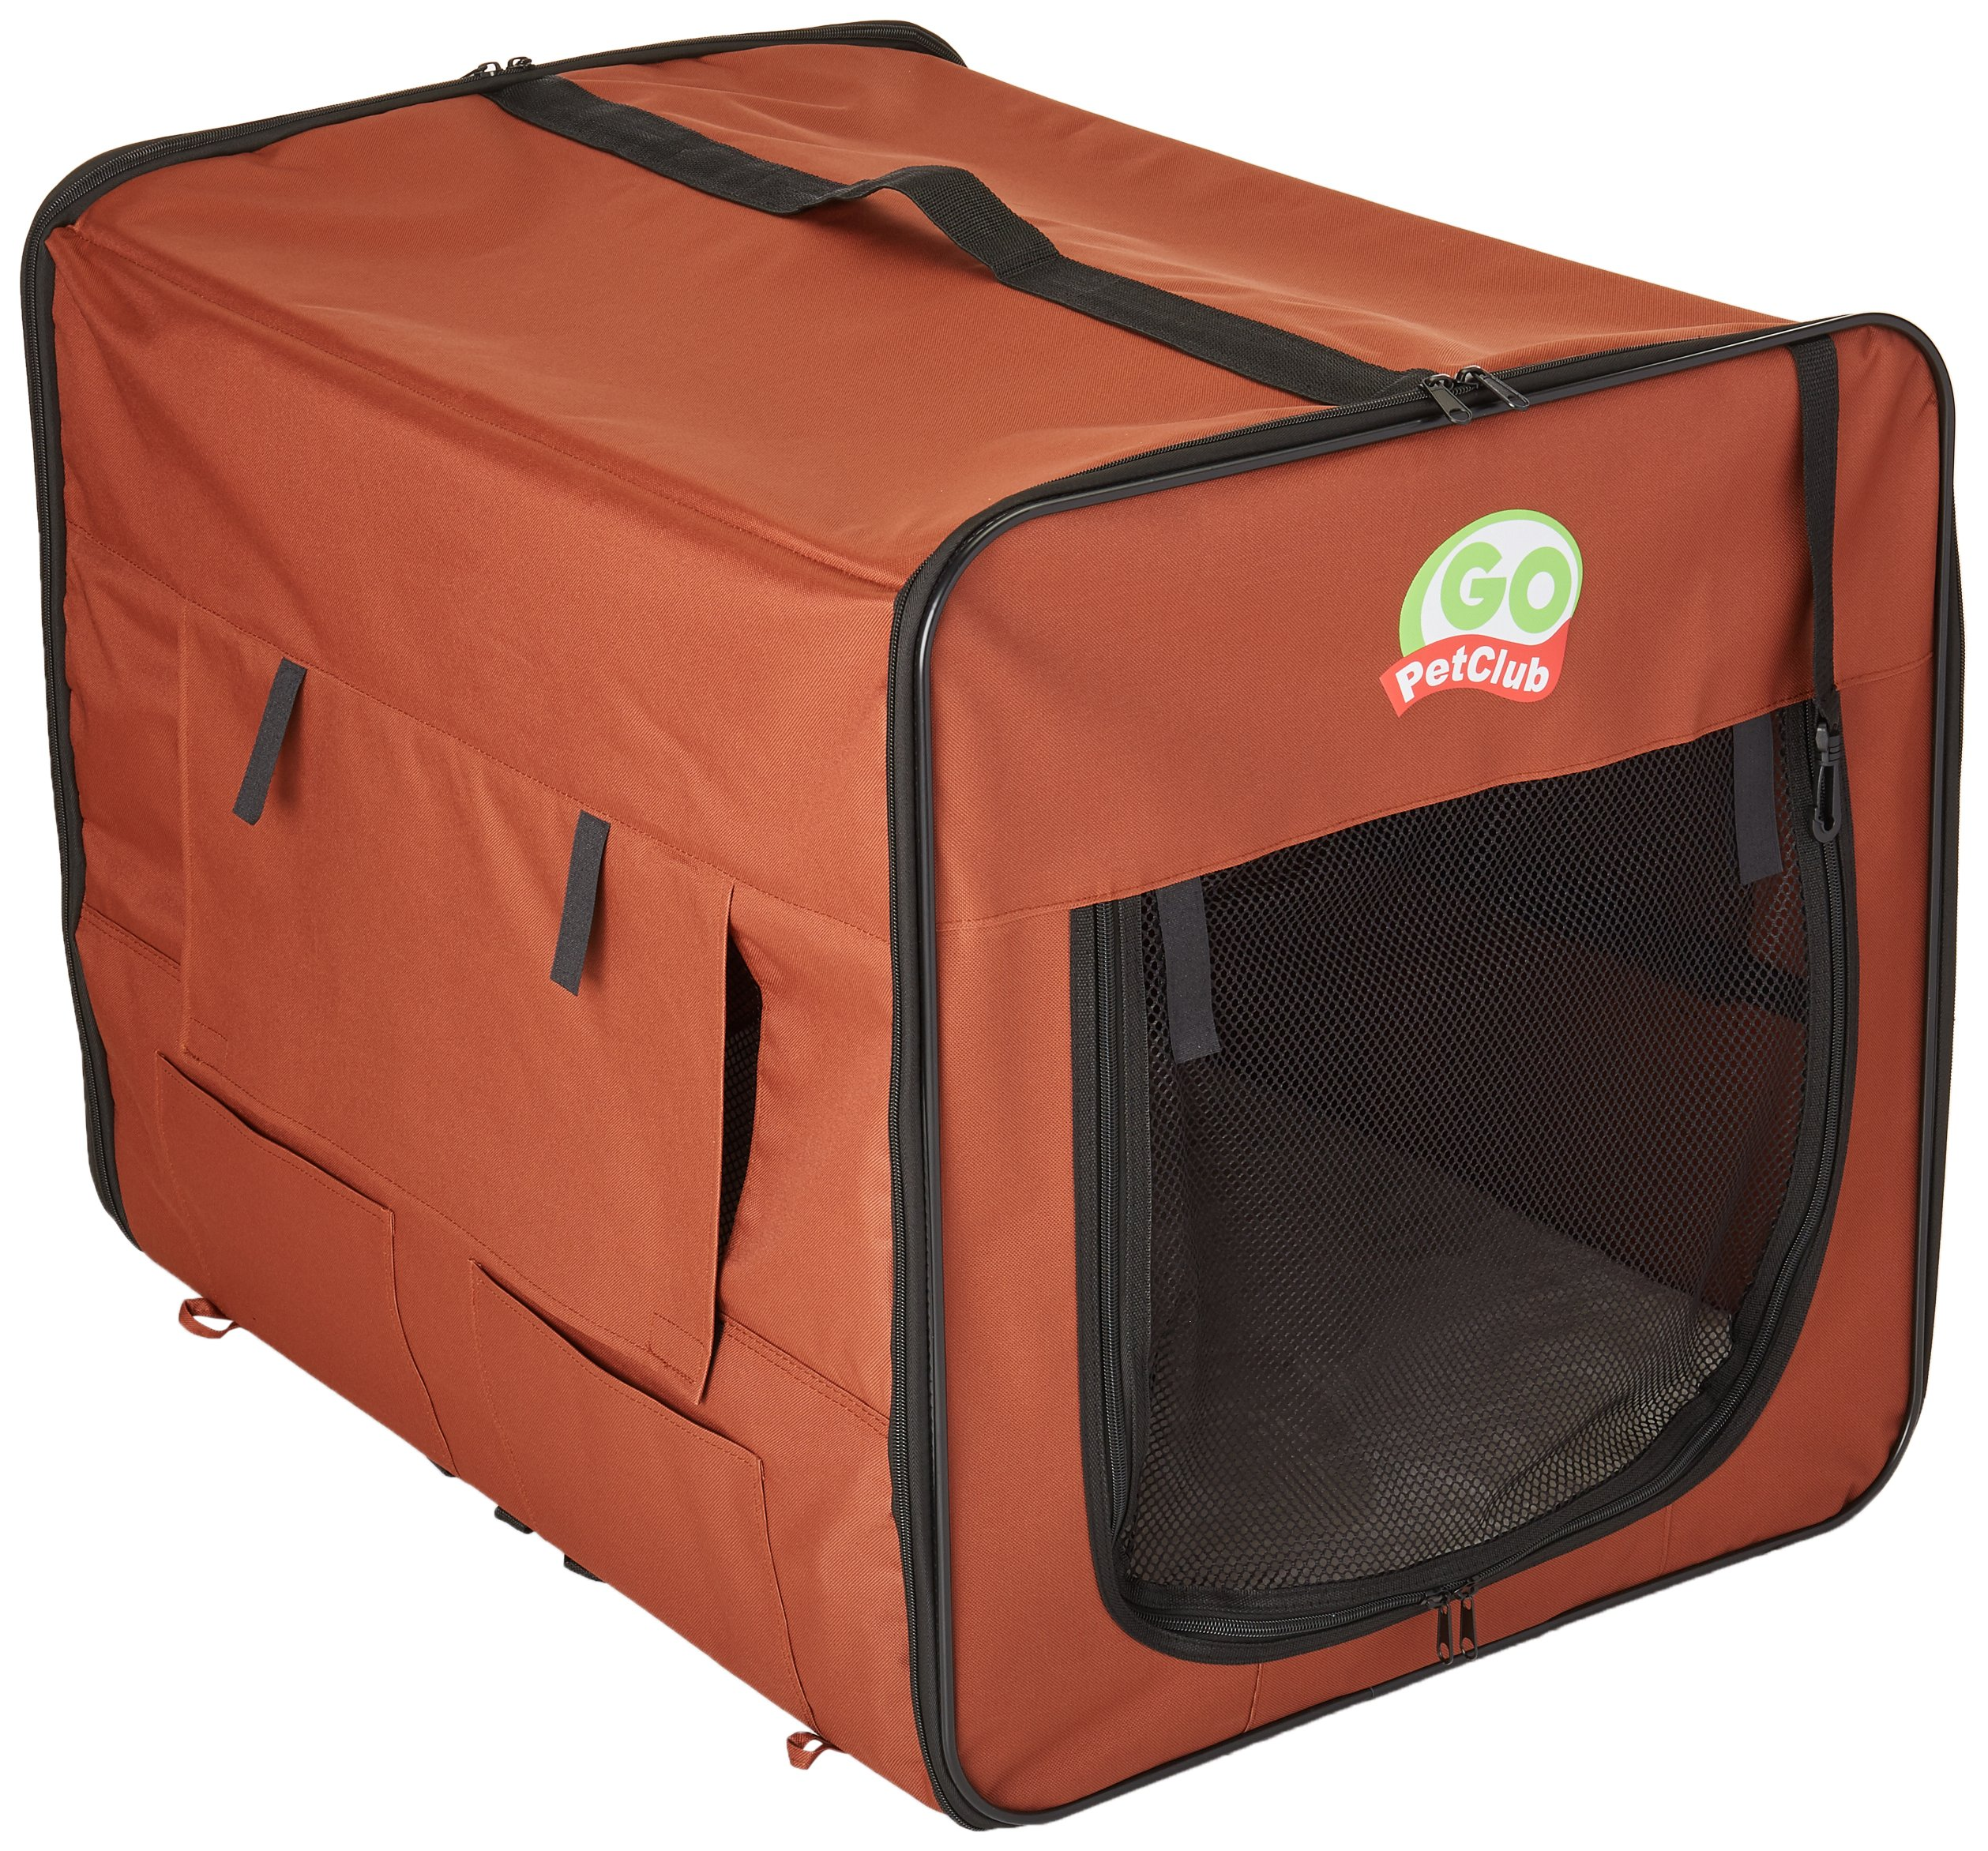 Go Pet Club AB32 Soft Dog Crate, Brown - 32 inches L x 22.2 inches W x 23.5 inches H by Go Pet Club